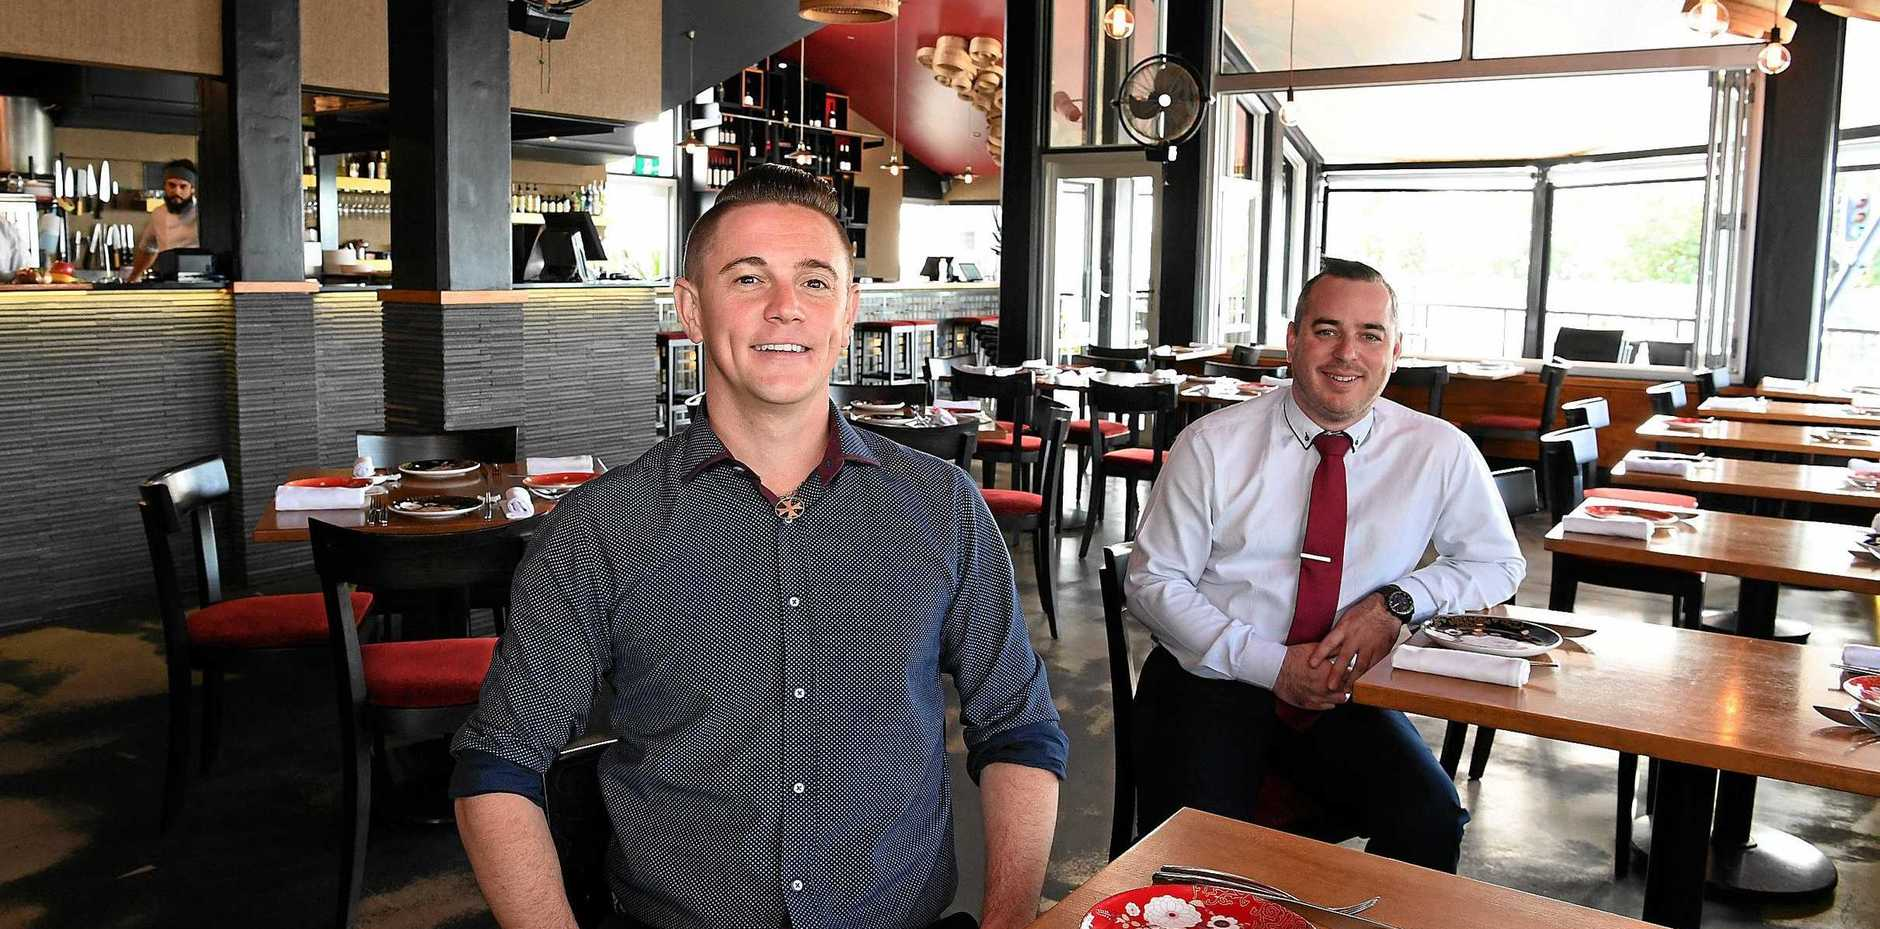 EXCITING: New owners taking charge of the Spice Bar at Mooloolaba. General manager Ross Charnock and co-owner Ian Dunham looking forward to serving customers.